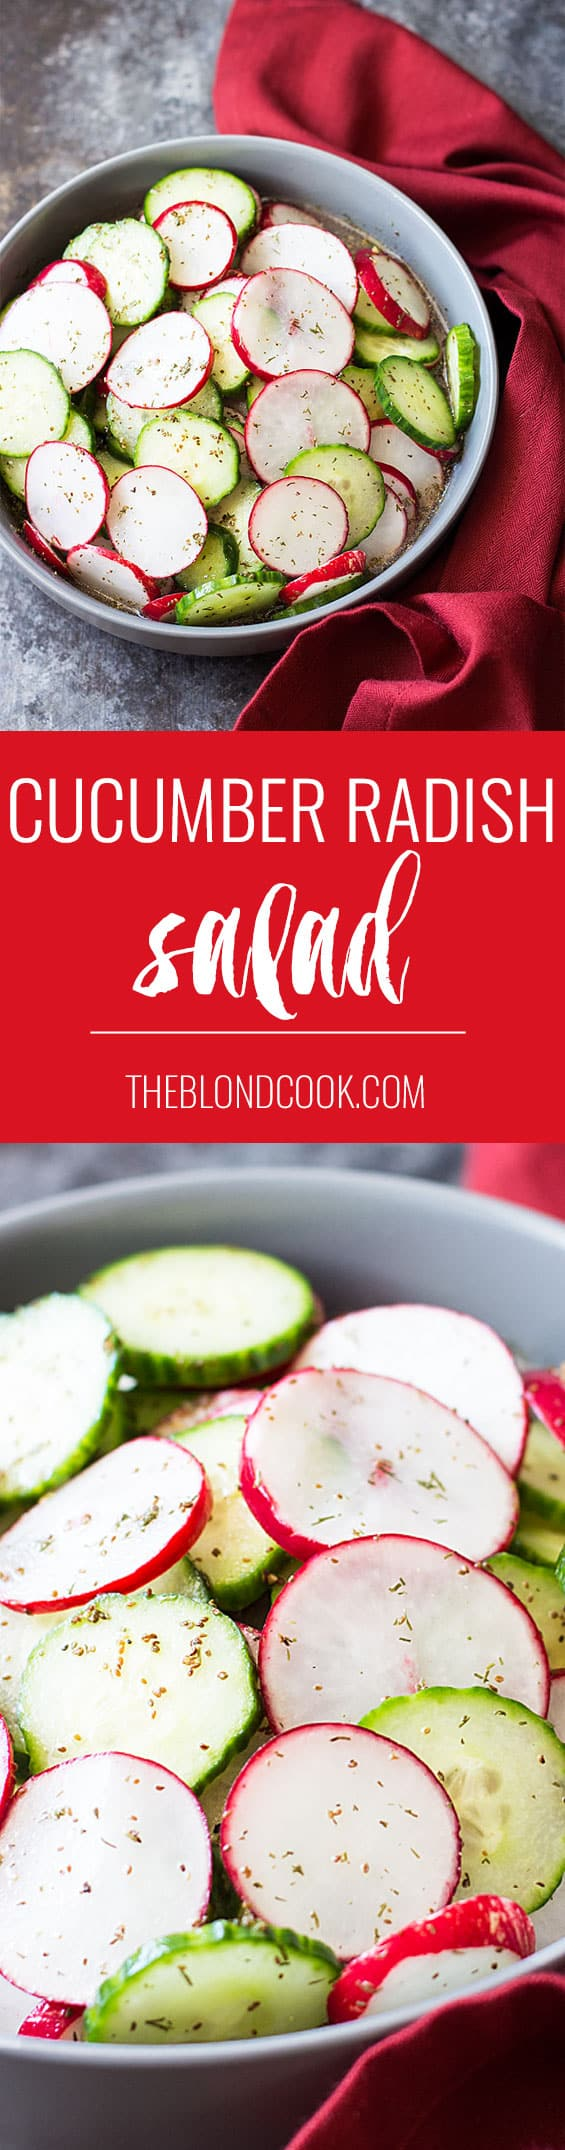 Cucumber Radish Salad with dill in a homemade vinaigrette | theblondcook.com